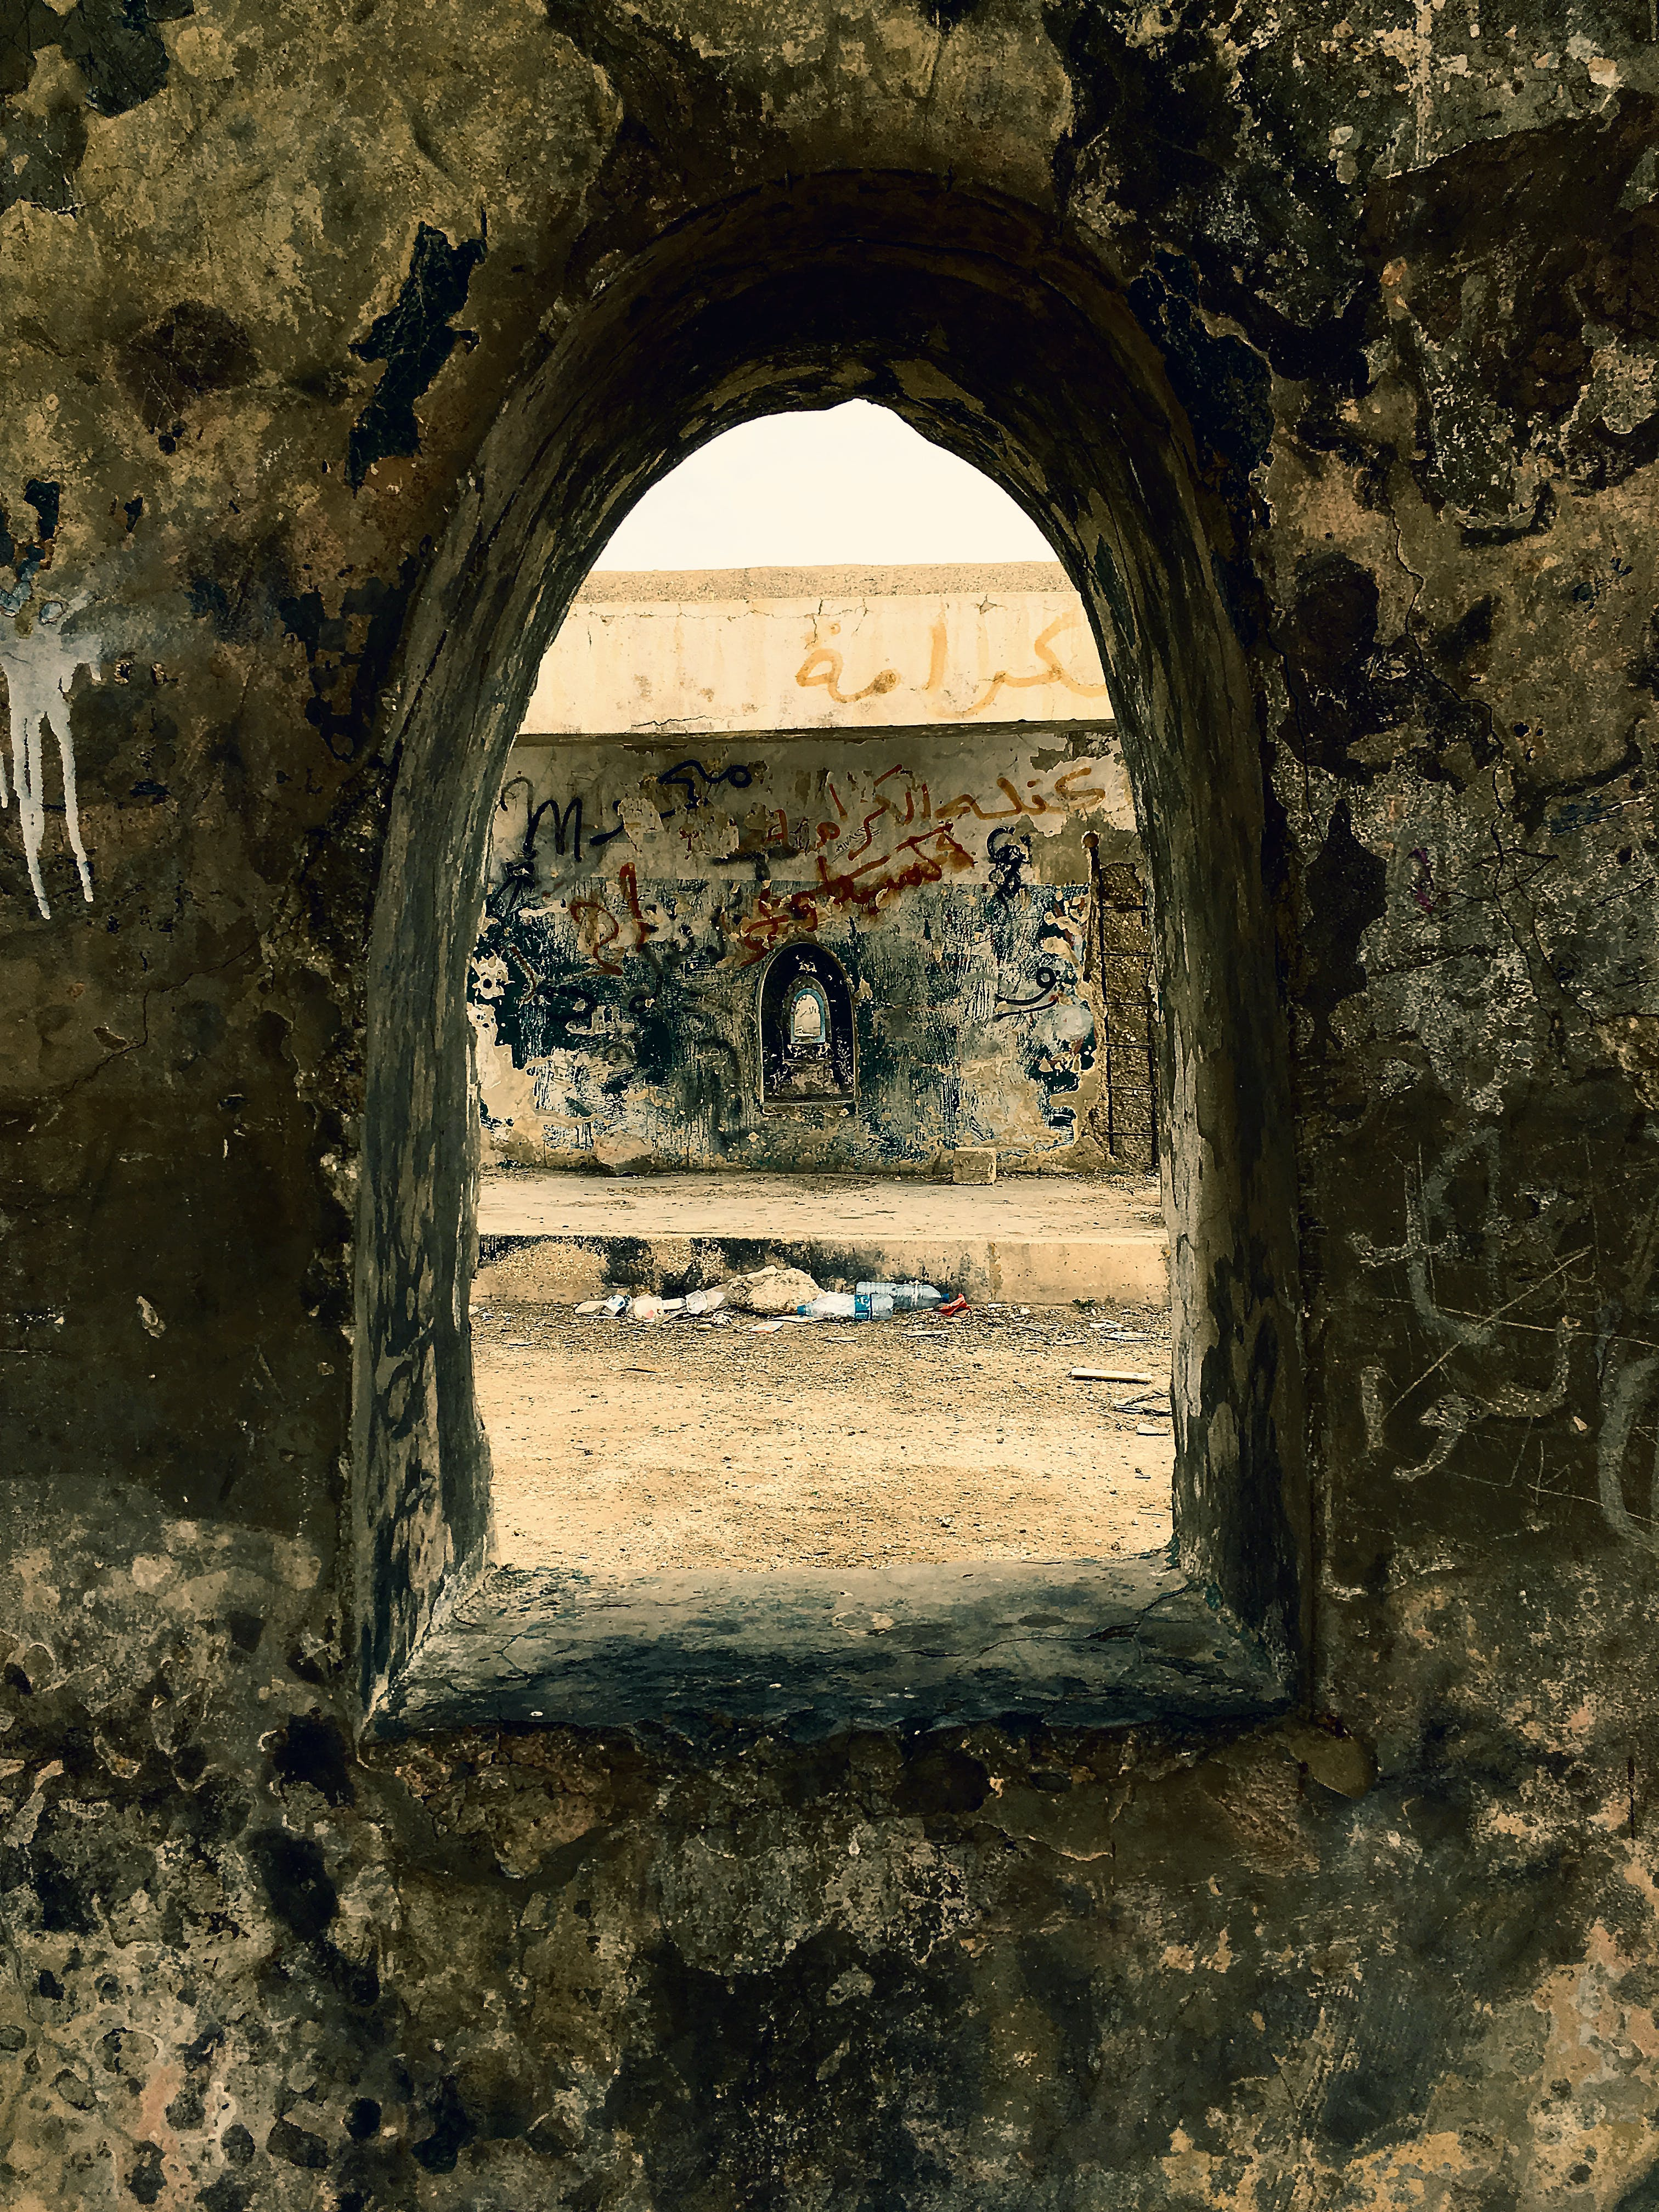 Free stock photo of arched window, dimension, graffiti, perspective